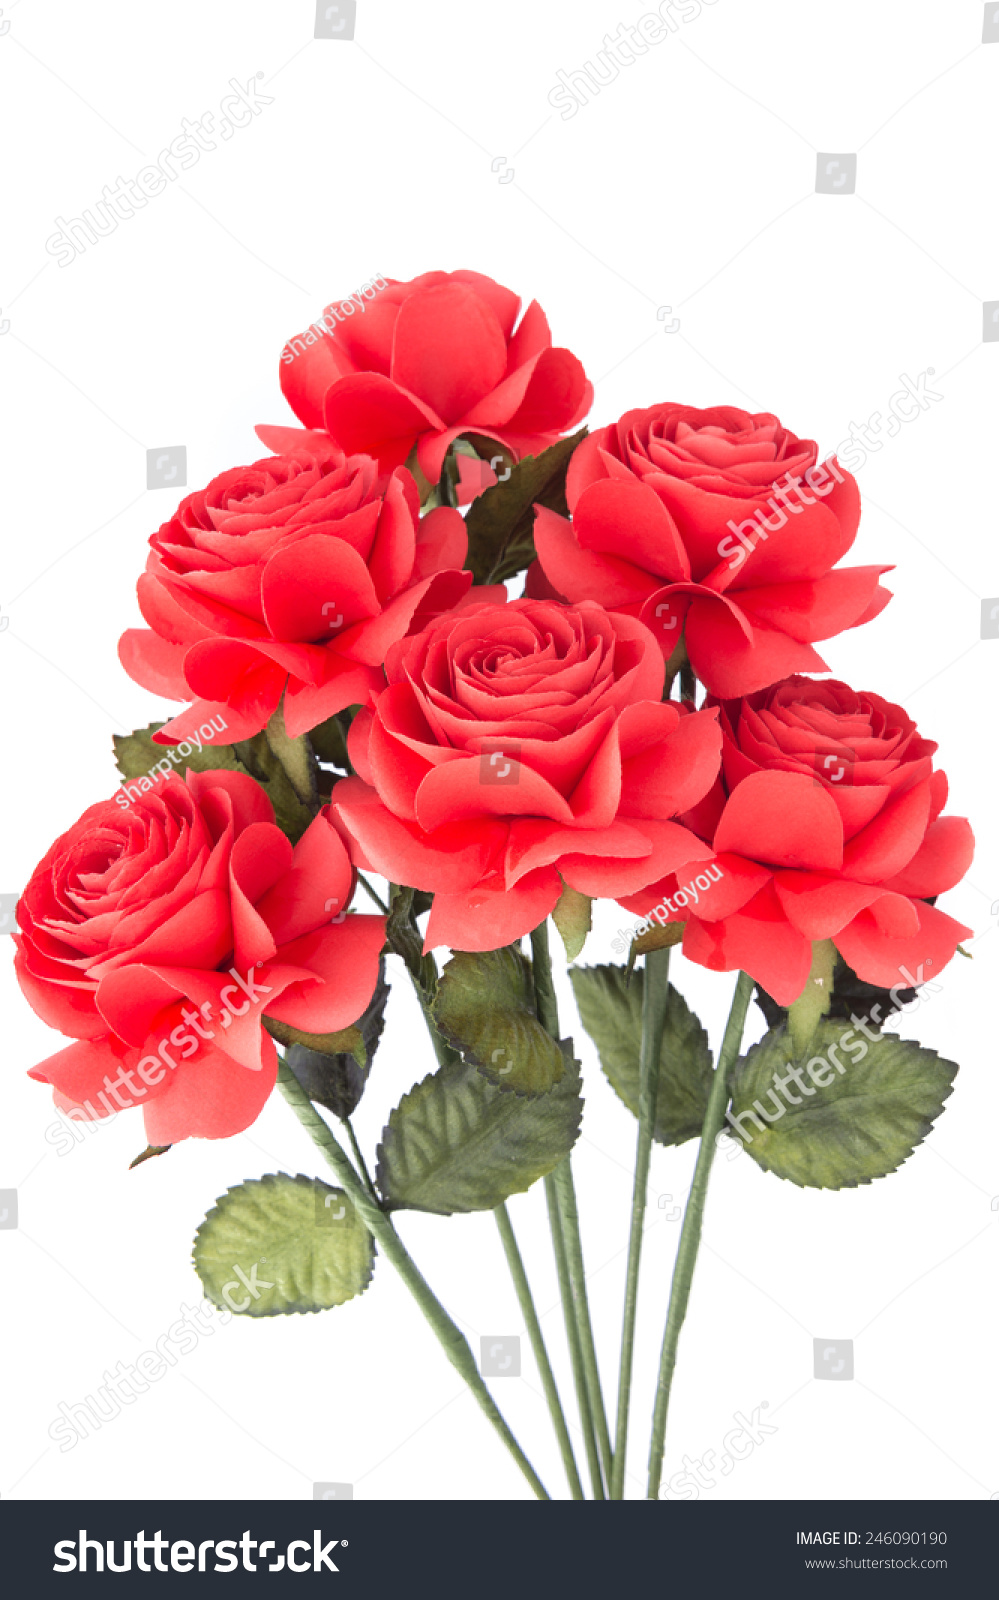 Artificial Red Rose Made By Paper Stock Photo Edit Now 246090190